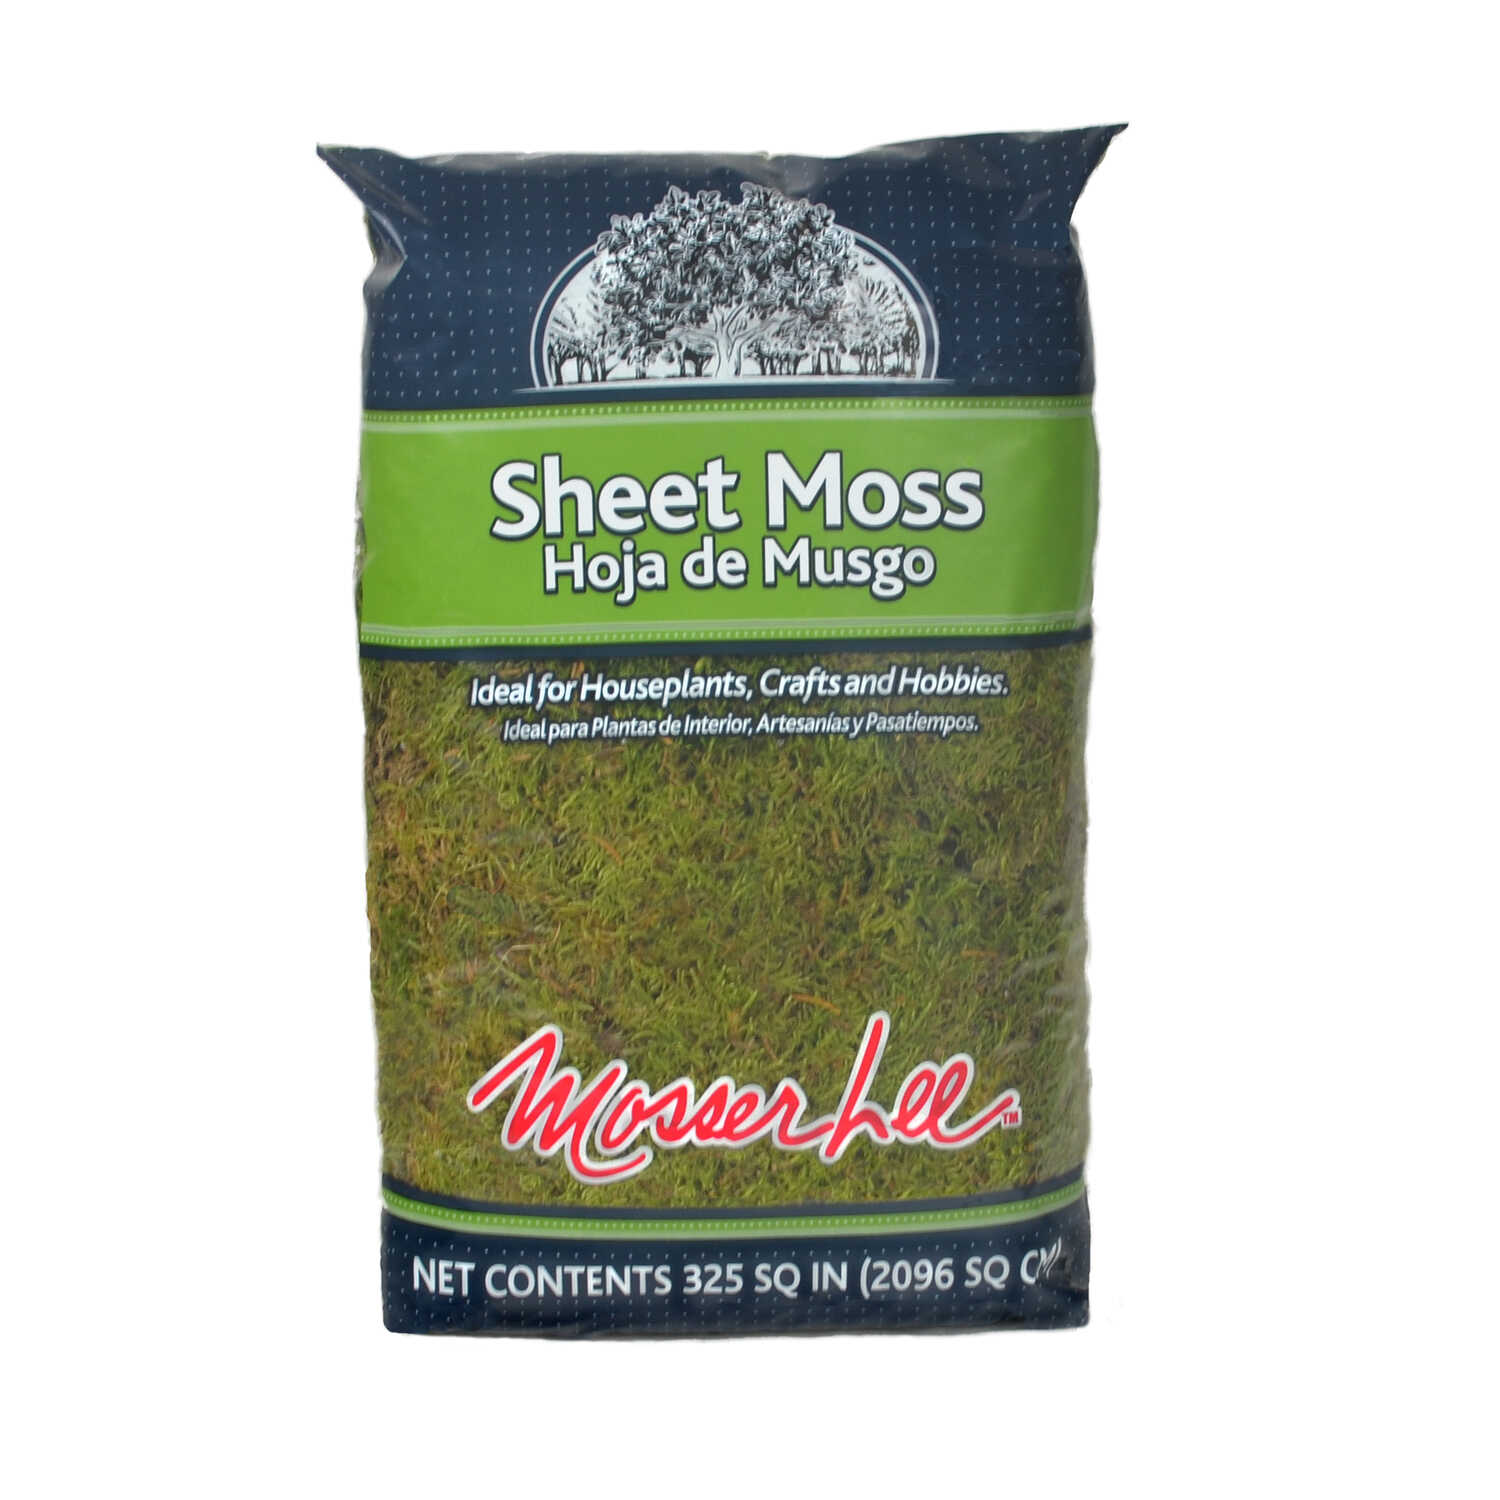 Mosser Lee  Organic Sheet Moss  325 cu. in.